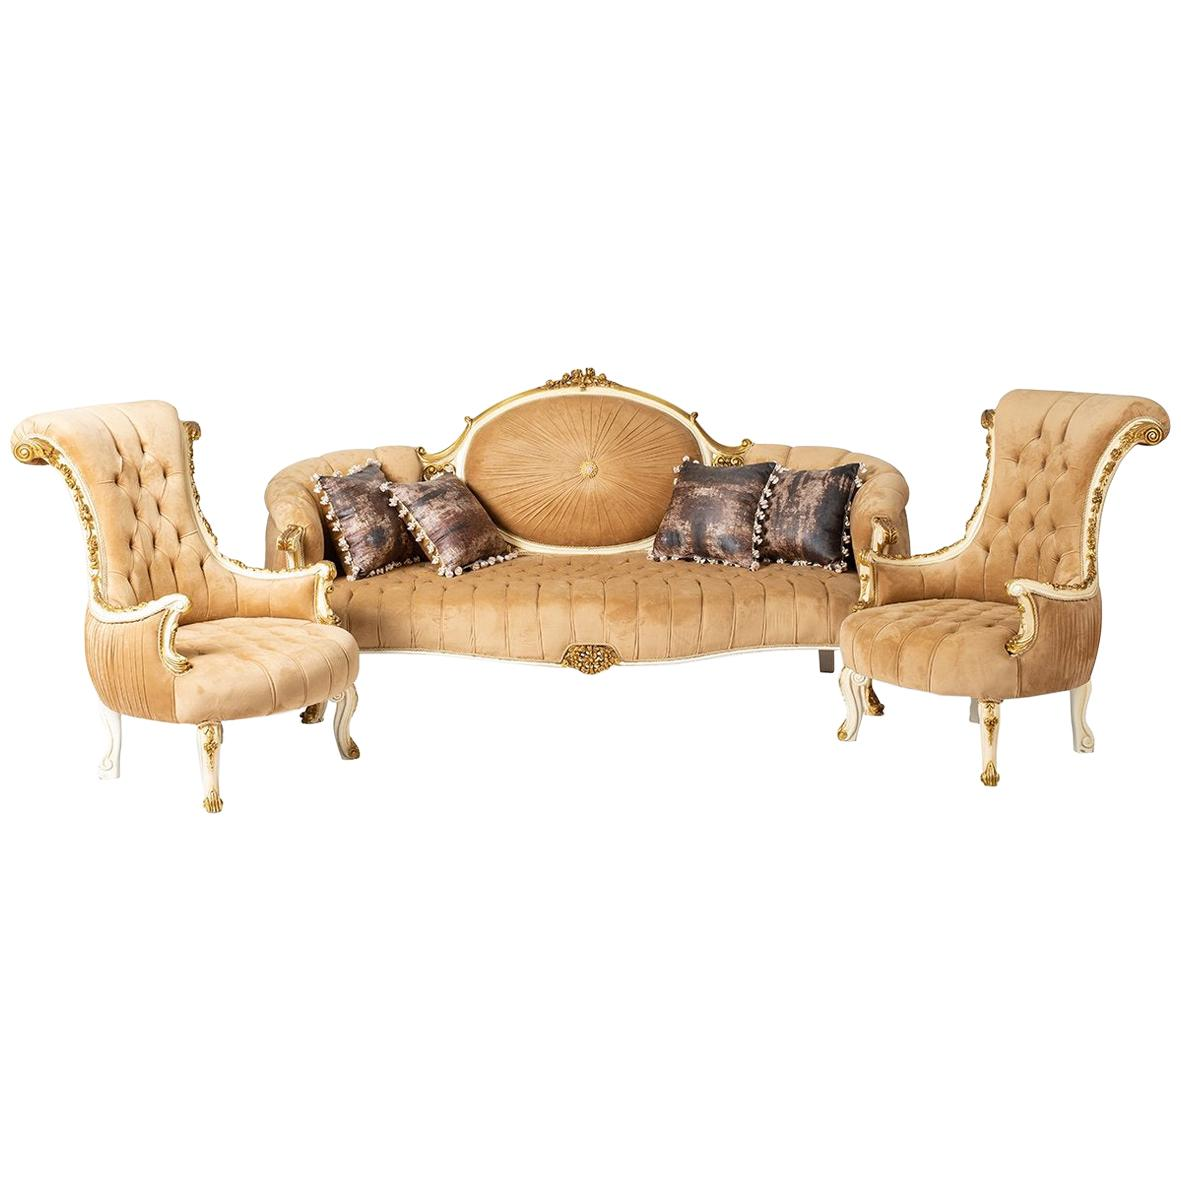 Classic Baroque Style Living Room '4 PIECES', 20th Century